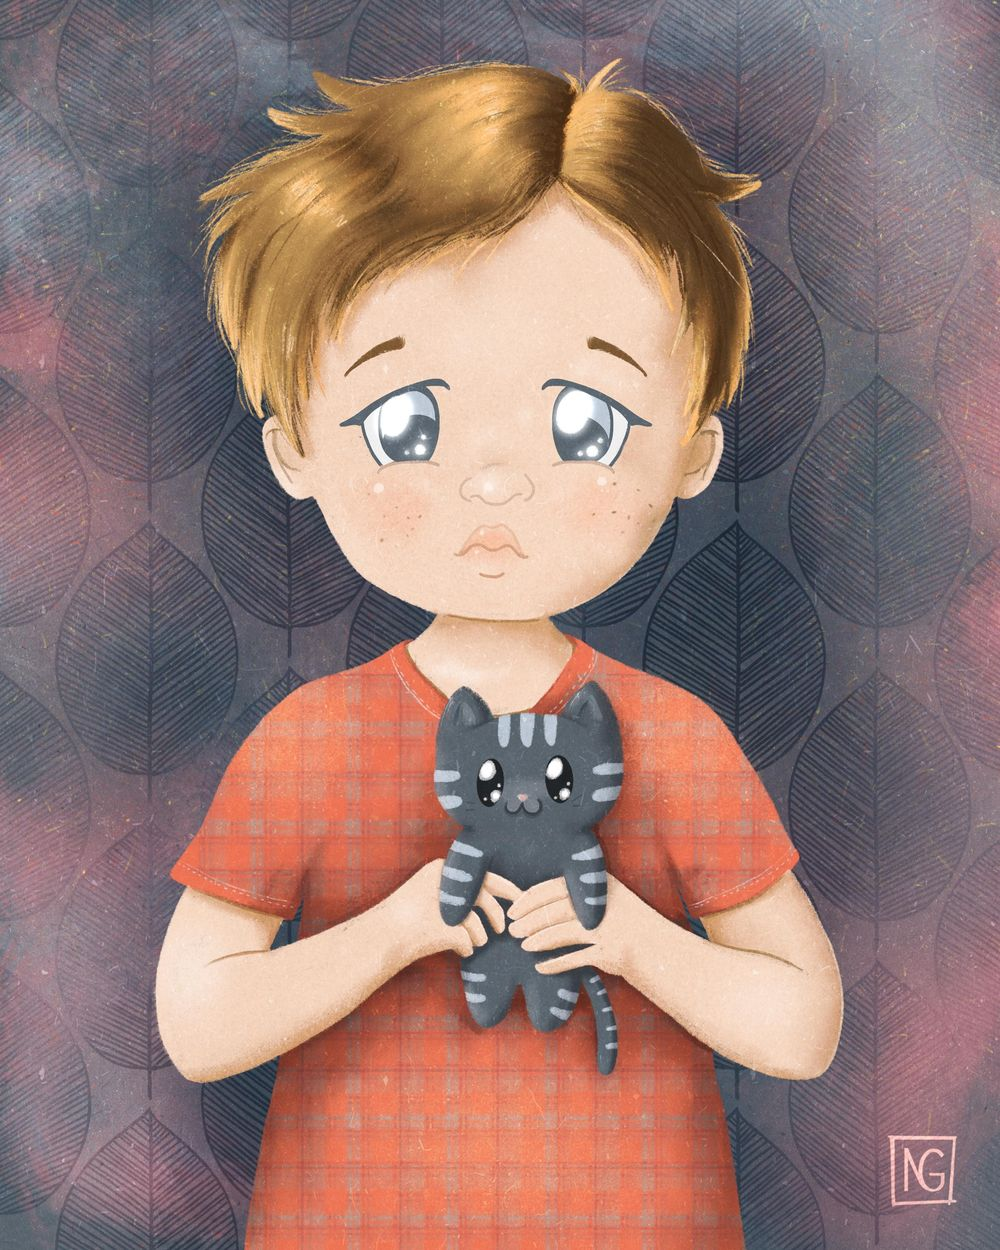 Sad boy with a kitten - image 3 - student project